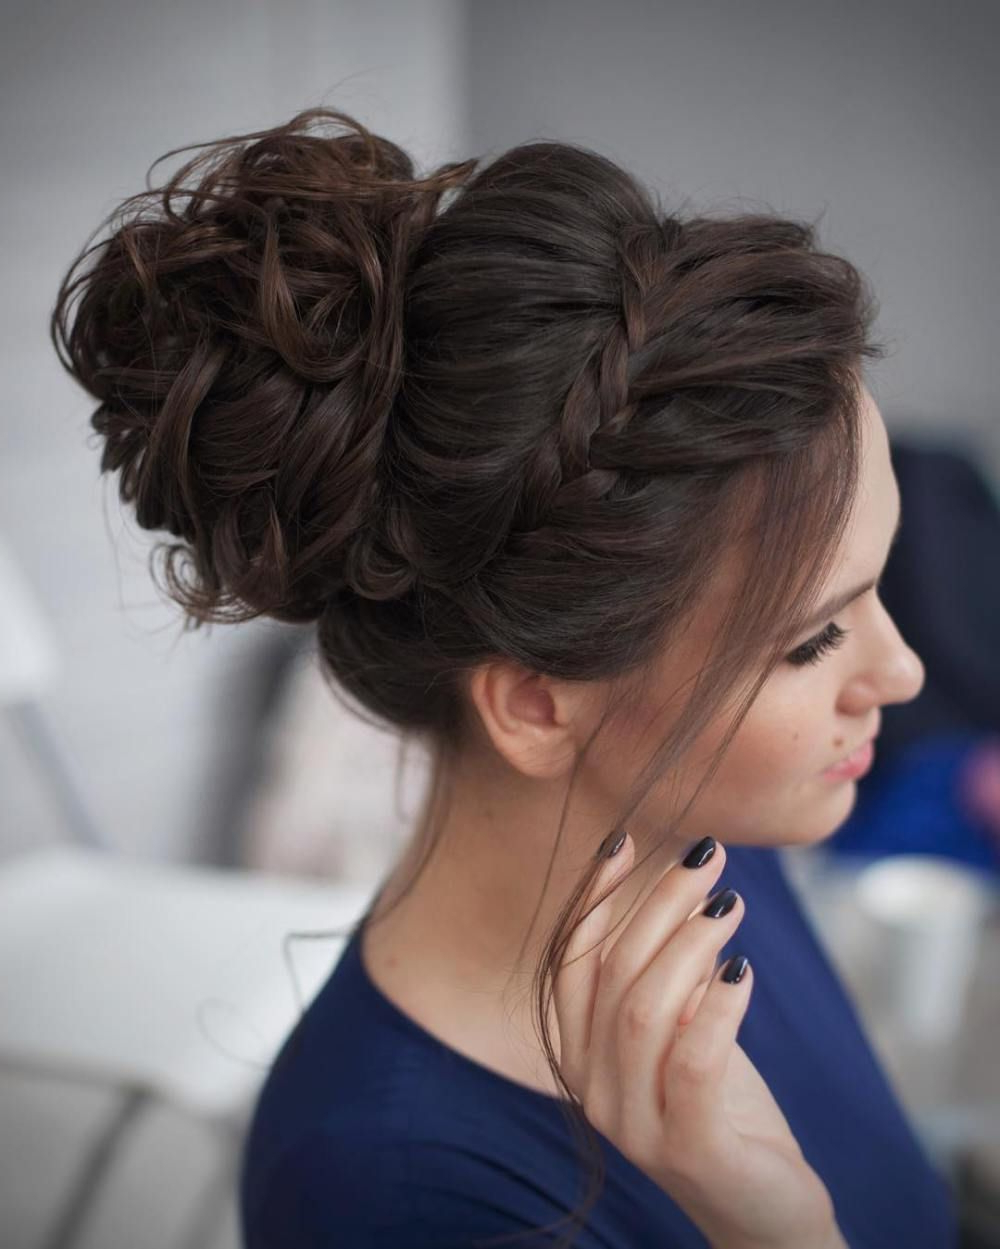 Hair For Well Liked Braided Chignon Hairstyles (View 6 of 20)